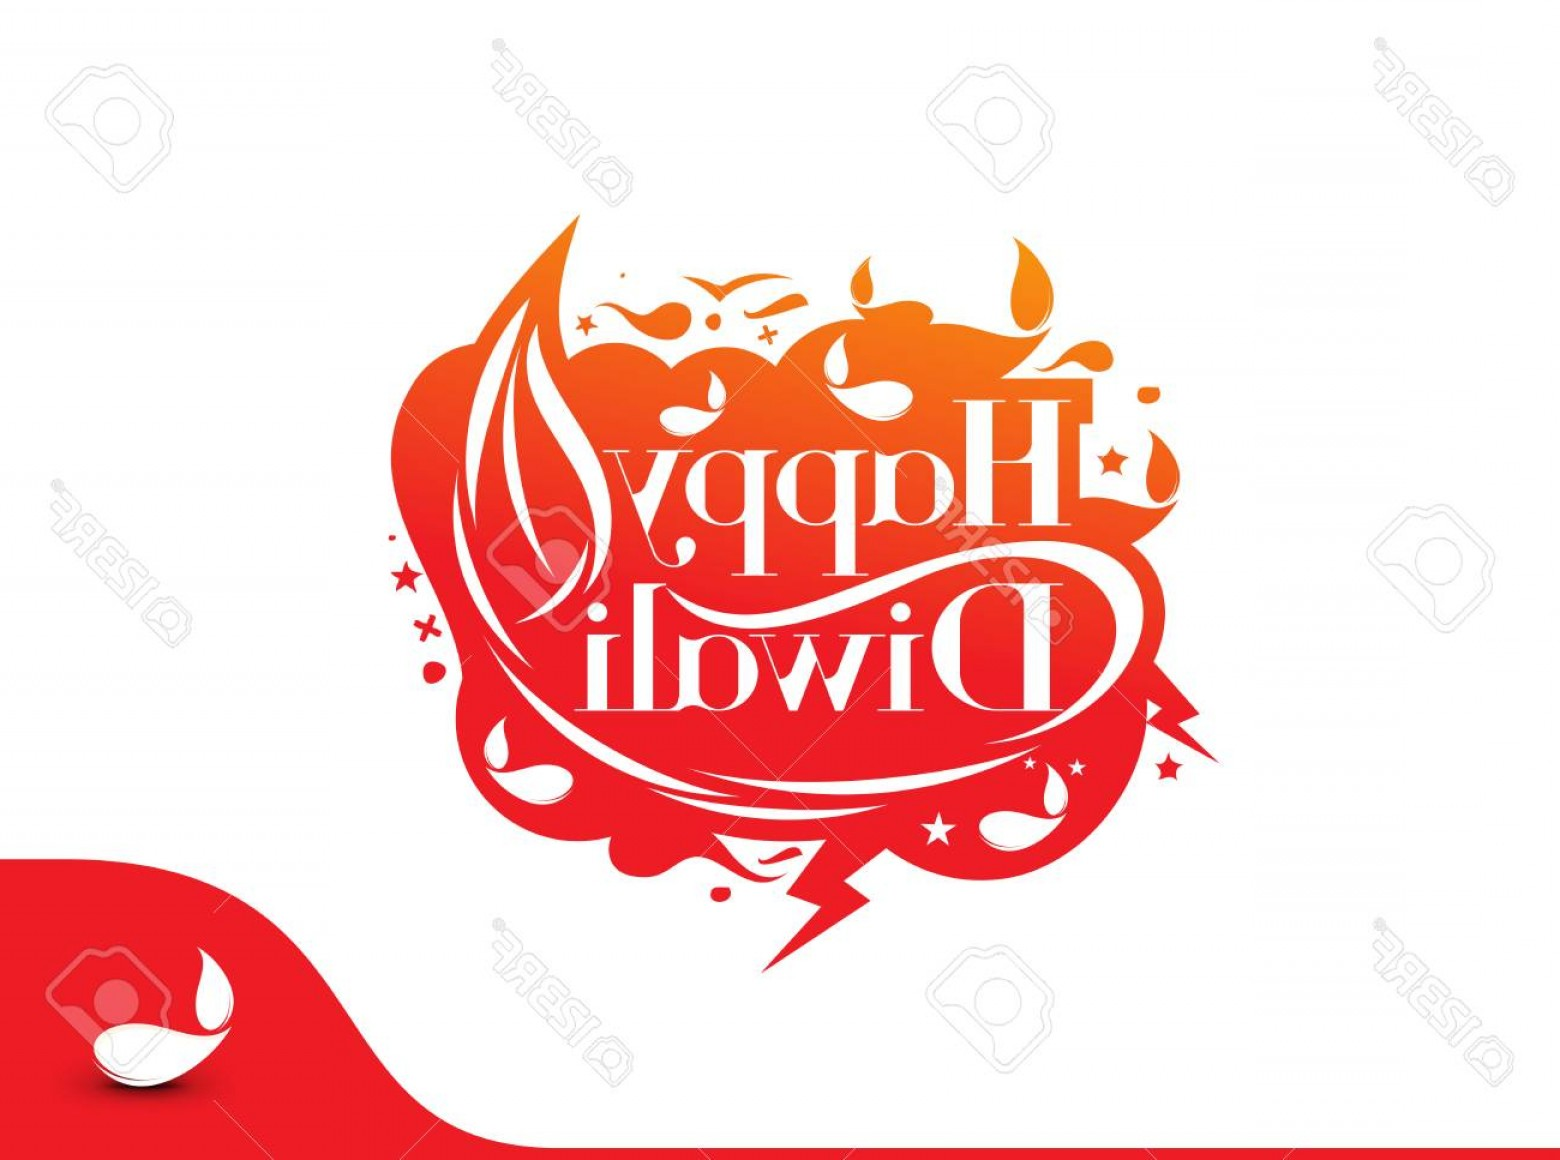 Text Illustrator Vector: Photostock Vector Happy Diwali Text Design Background Abstract Vector Illustration